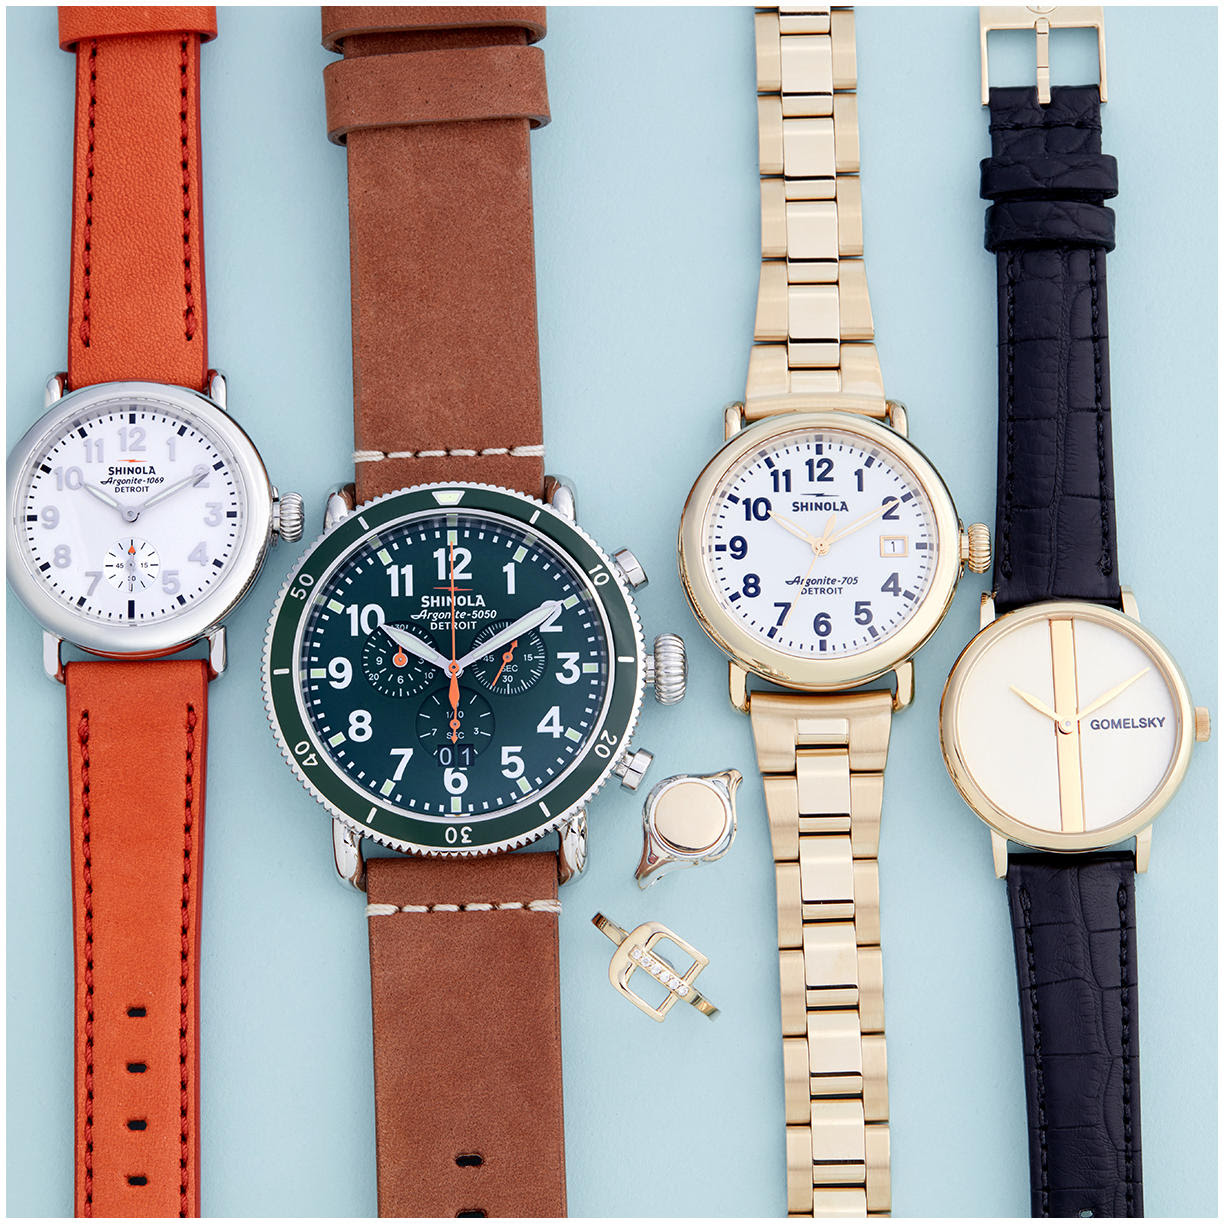 Nordstrom Rack: Shinola Watches, Handbags & More Up to 60% Off